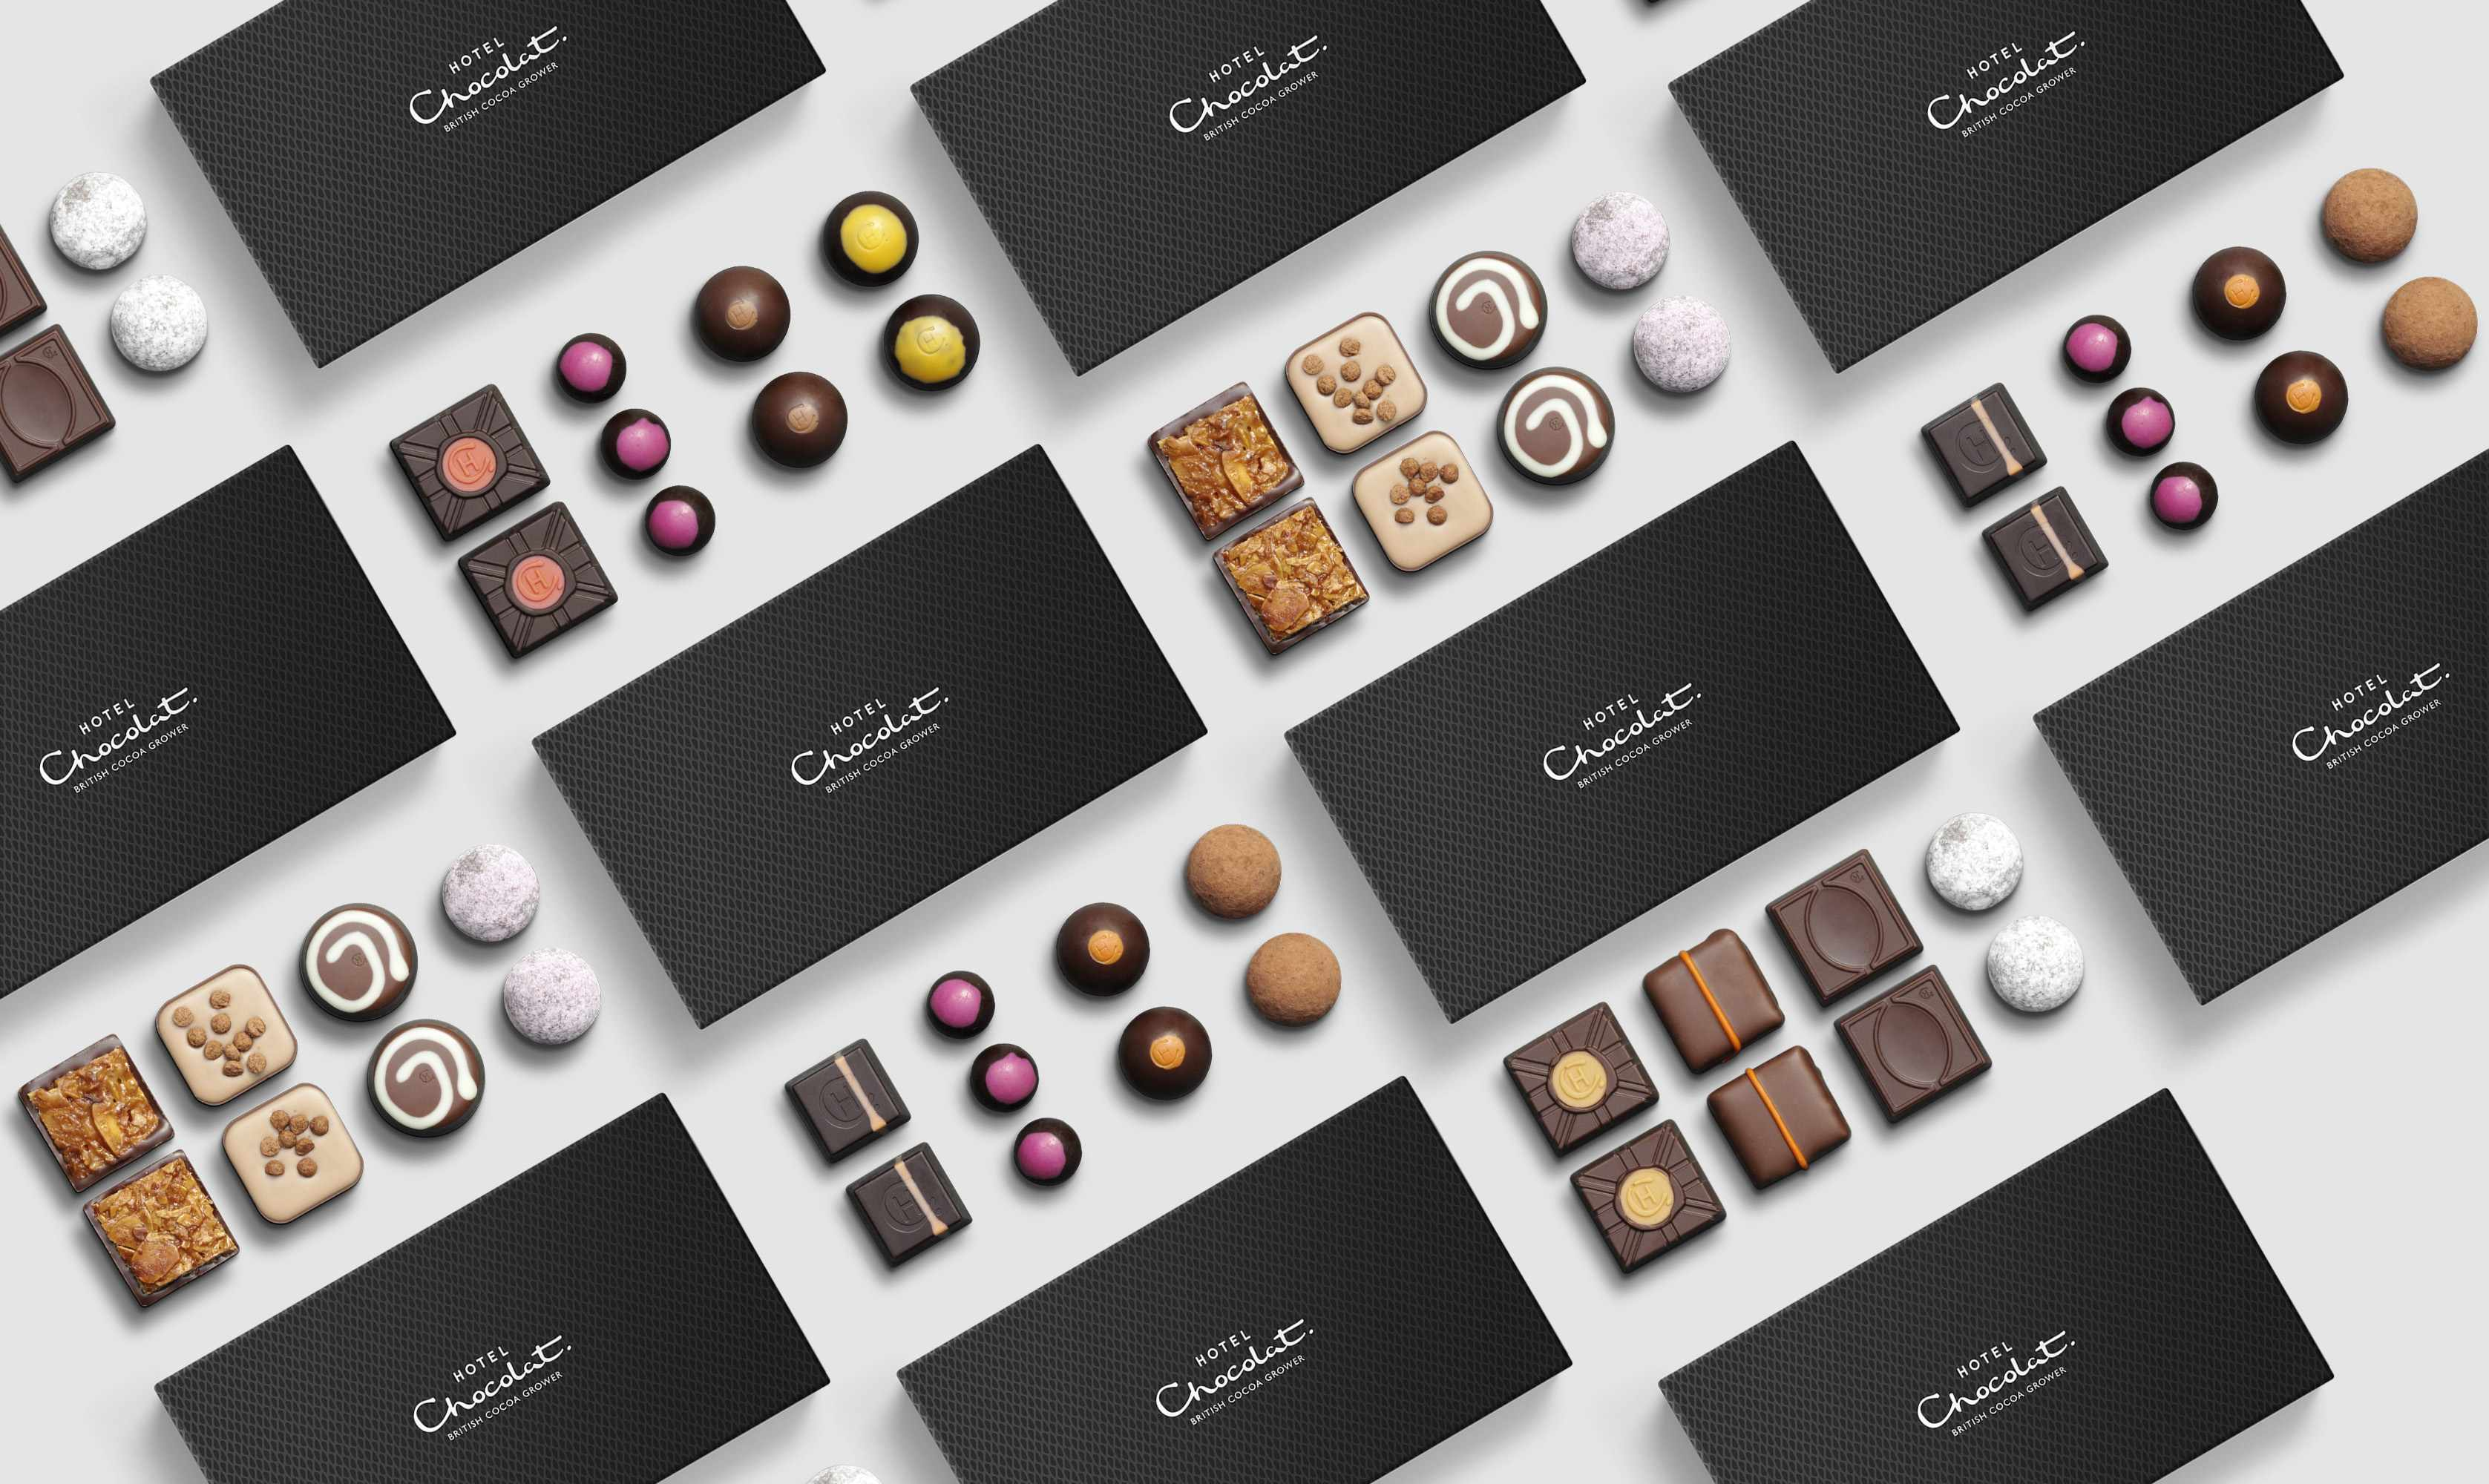 Hotel Chocolat chocolate delivery box selection